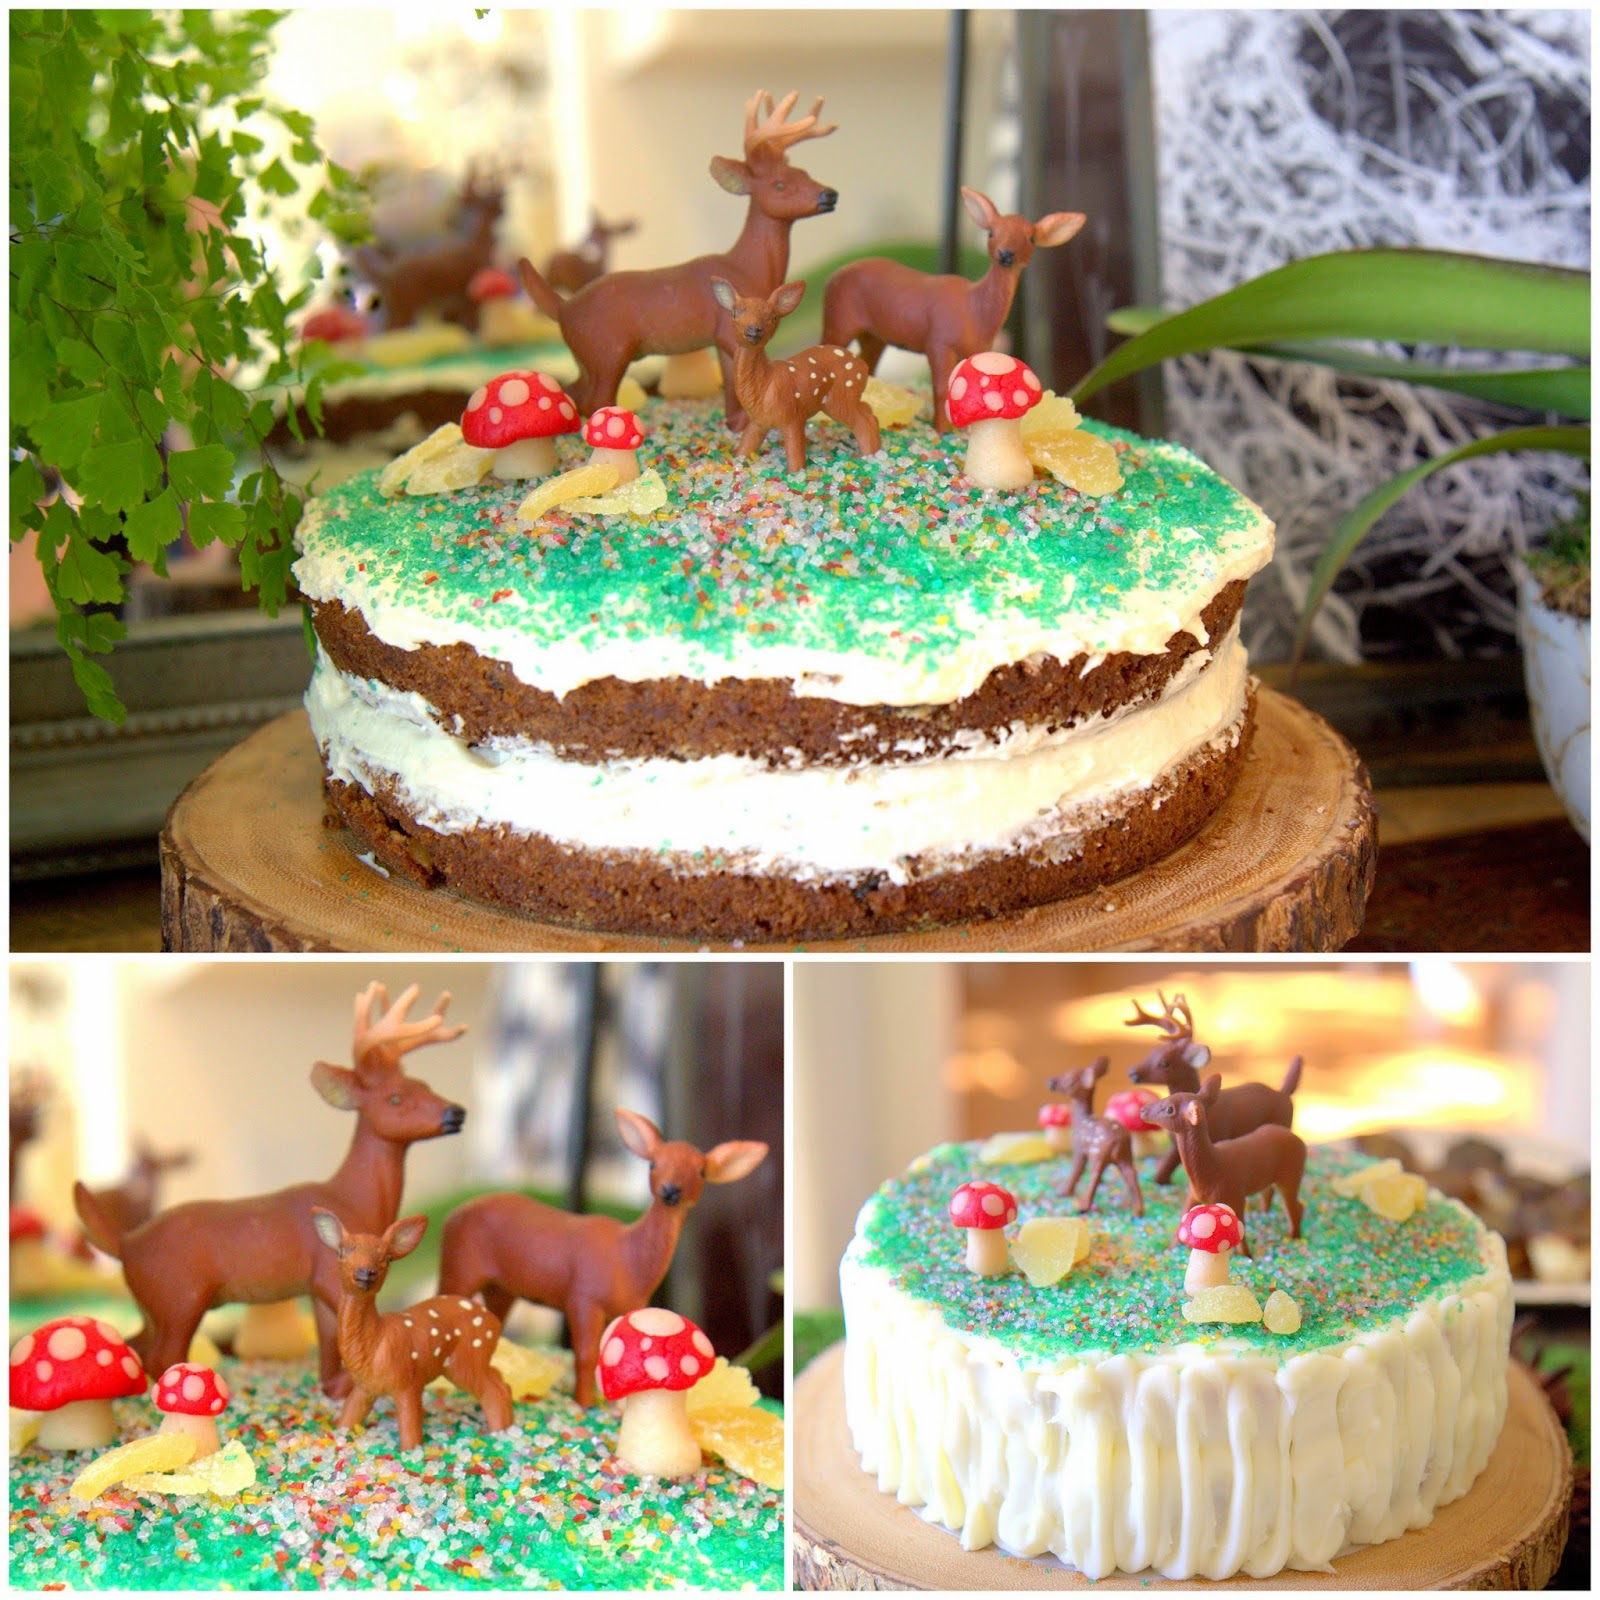 Woodland Party; Deer cakes, marzipan mushrooms, carrot cake and vanilla cake; dessert, party food: Nora's Nest